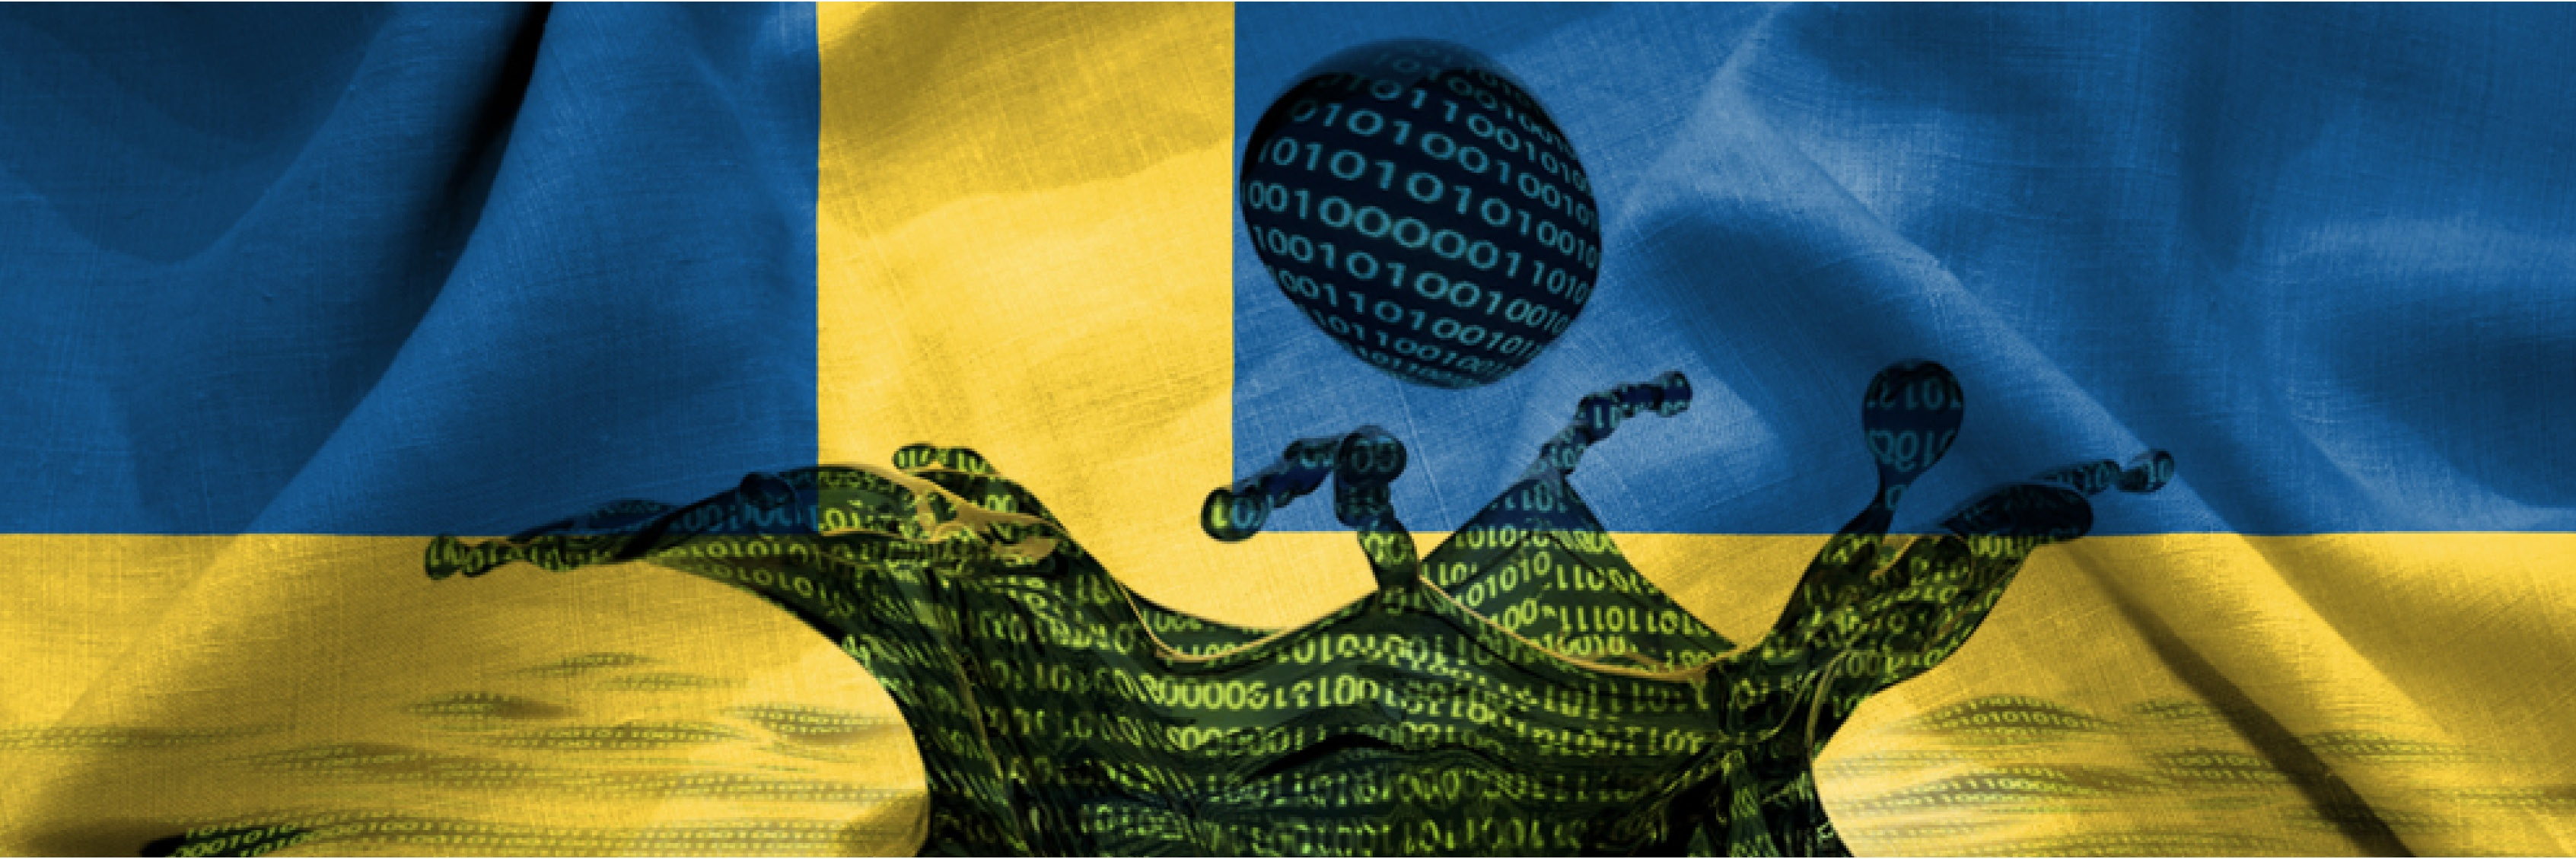 Everything You Need to Know About the Swedish Data Leak